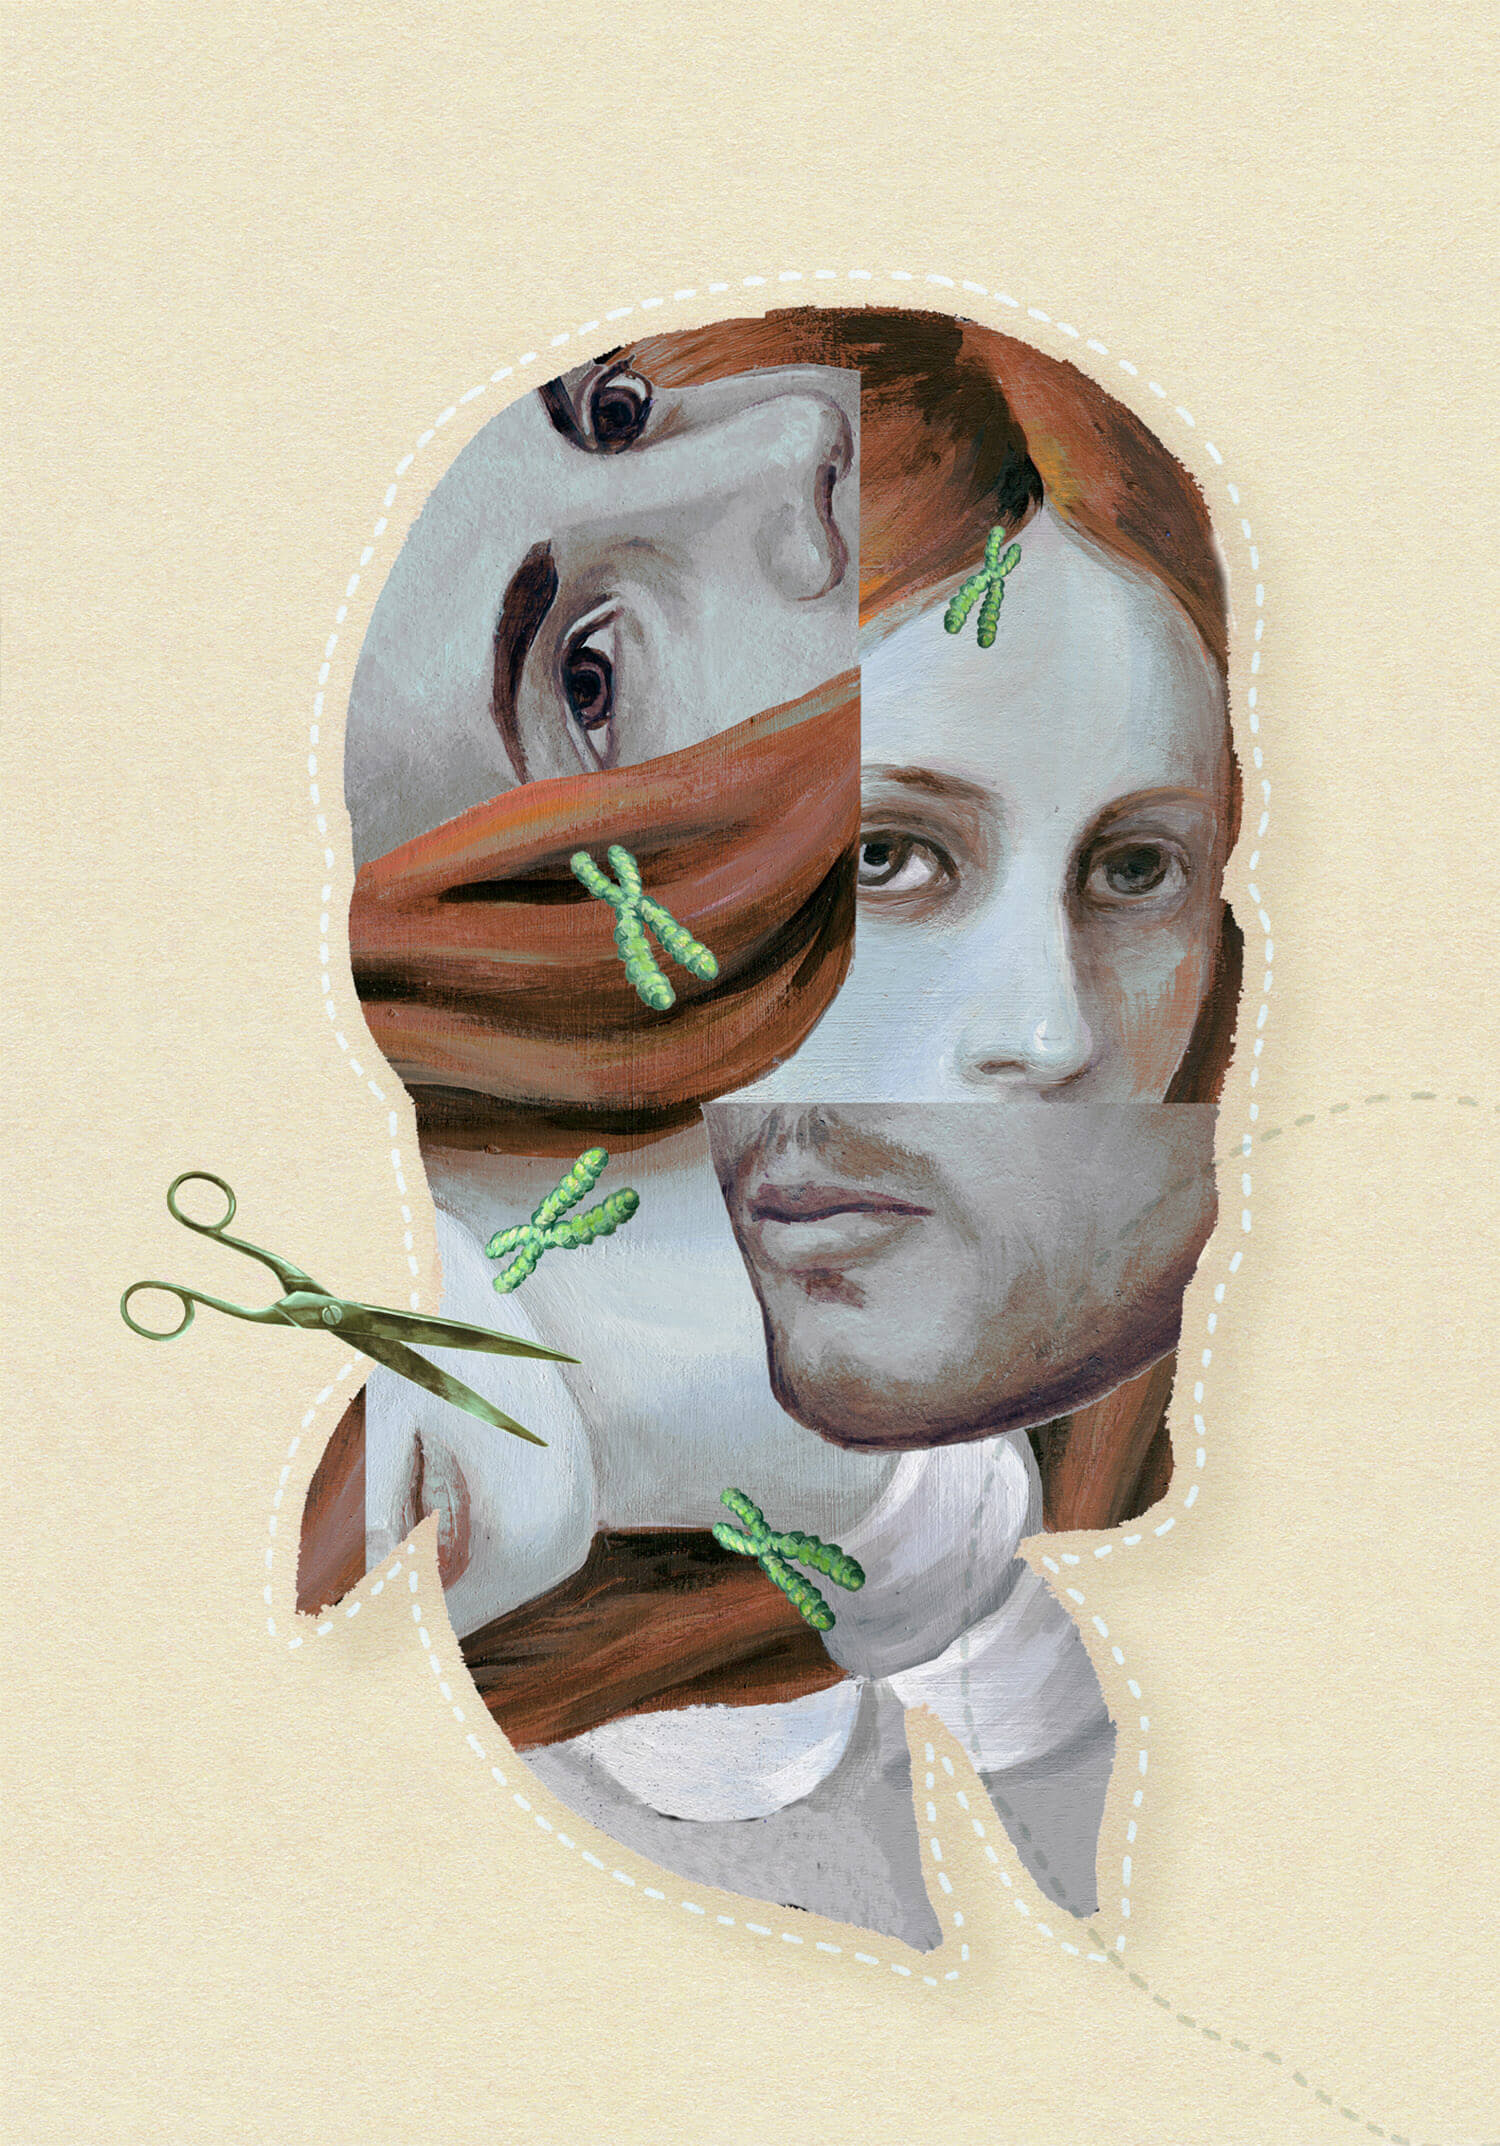 double exposure style painted portrait